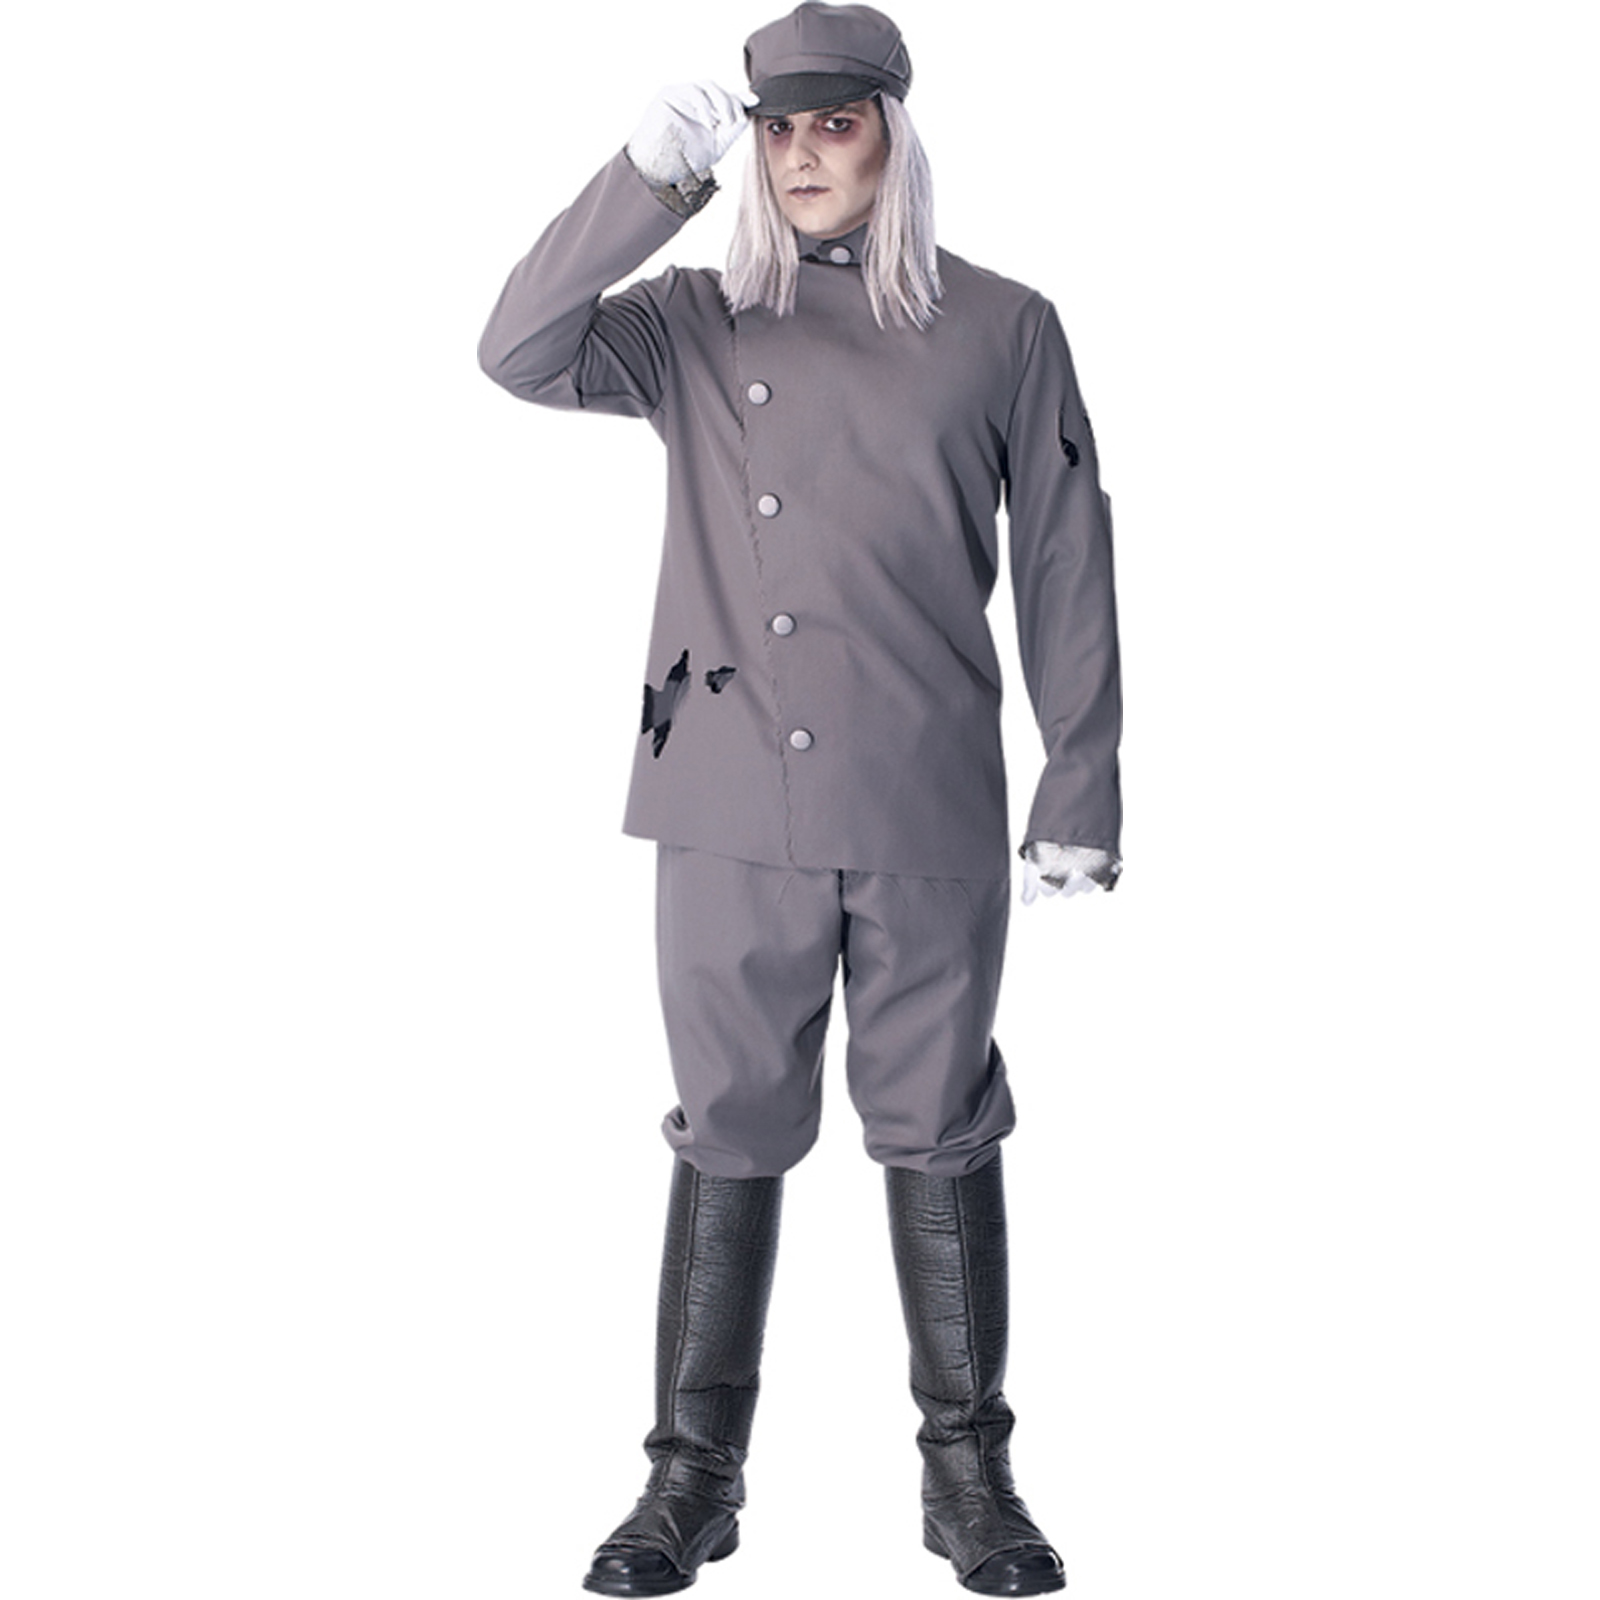 Paper Magic Costumes Hemlock The Chauffer Costume (Men's Adult Large) at Sears.com